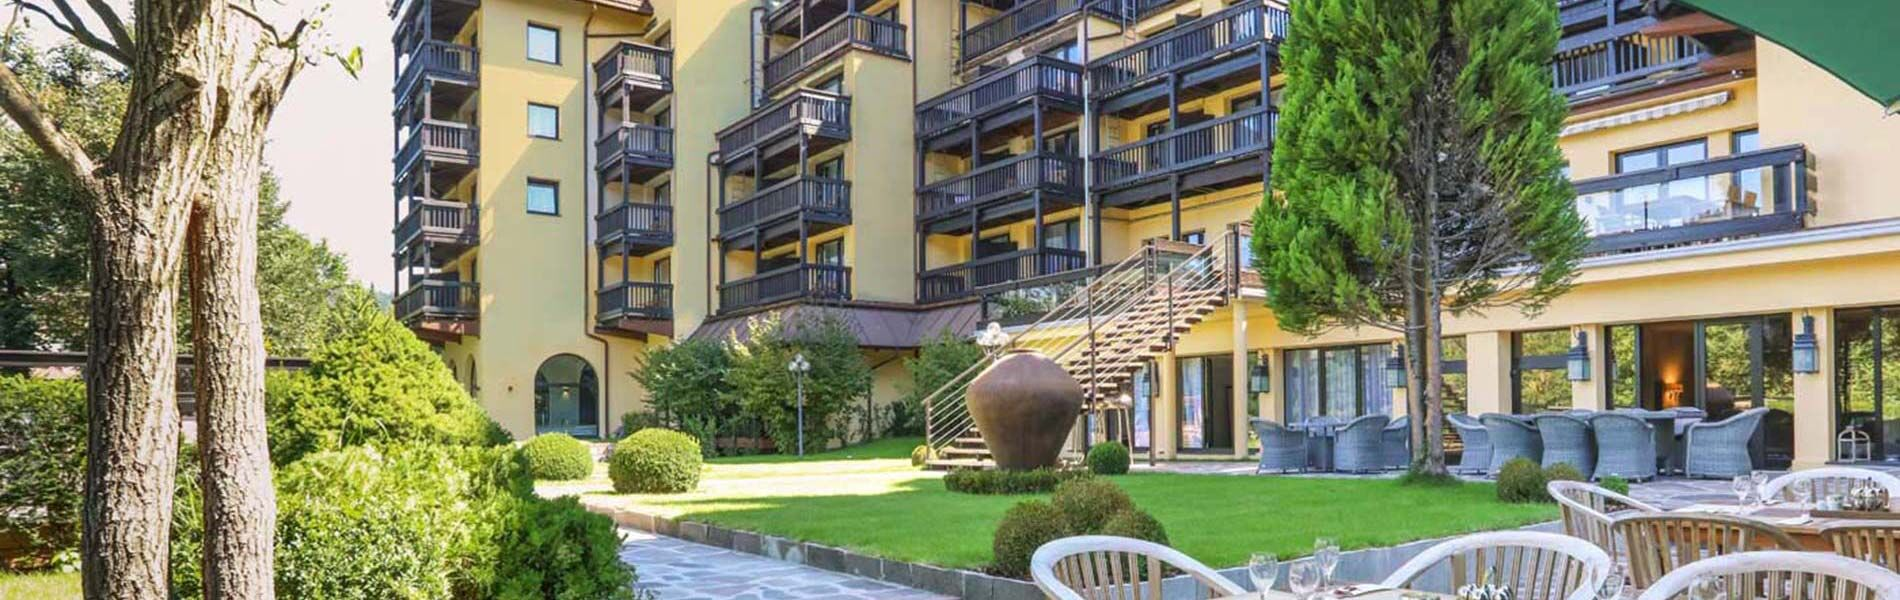 -Parkhotel Luise-